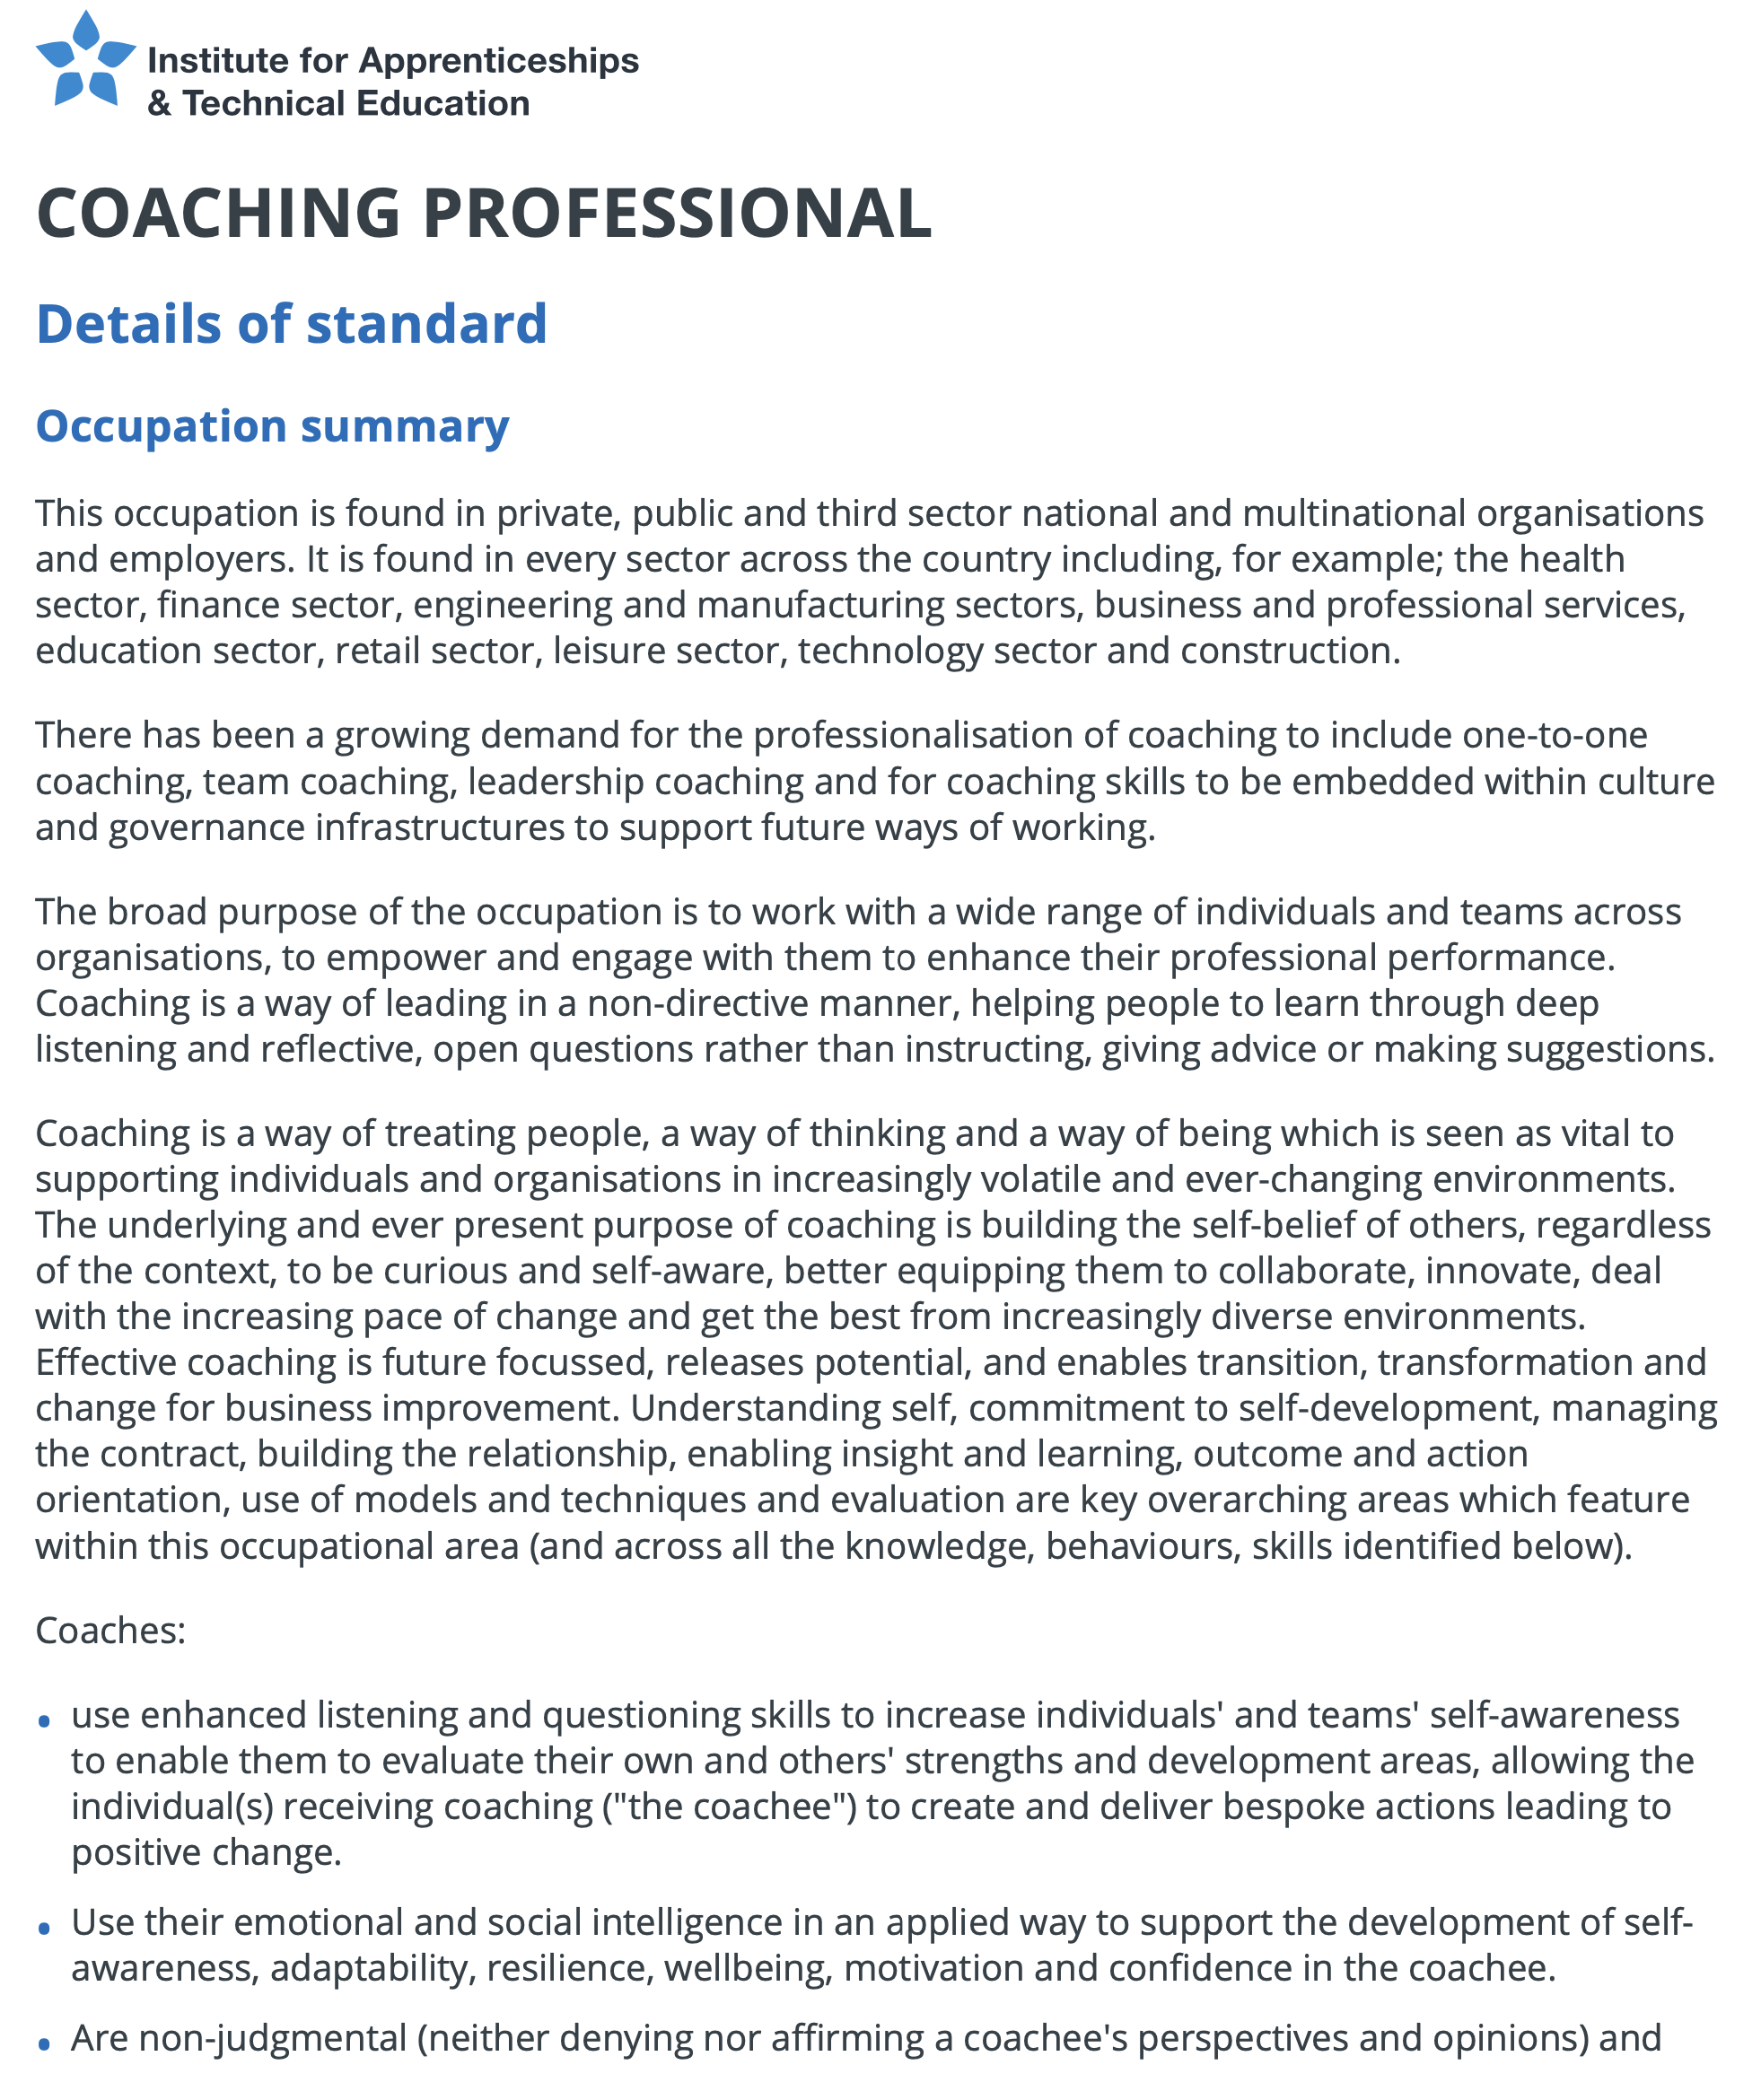 Coaching professional  Institute for Apprenticeships and Technical Education.pdf